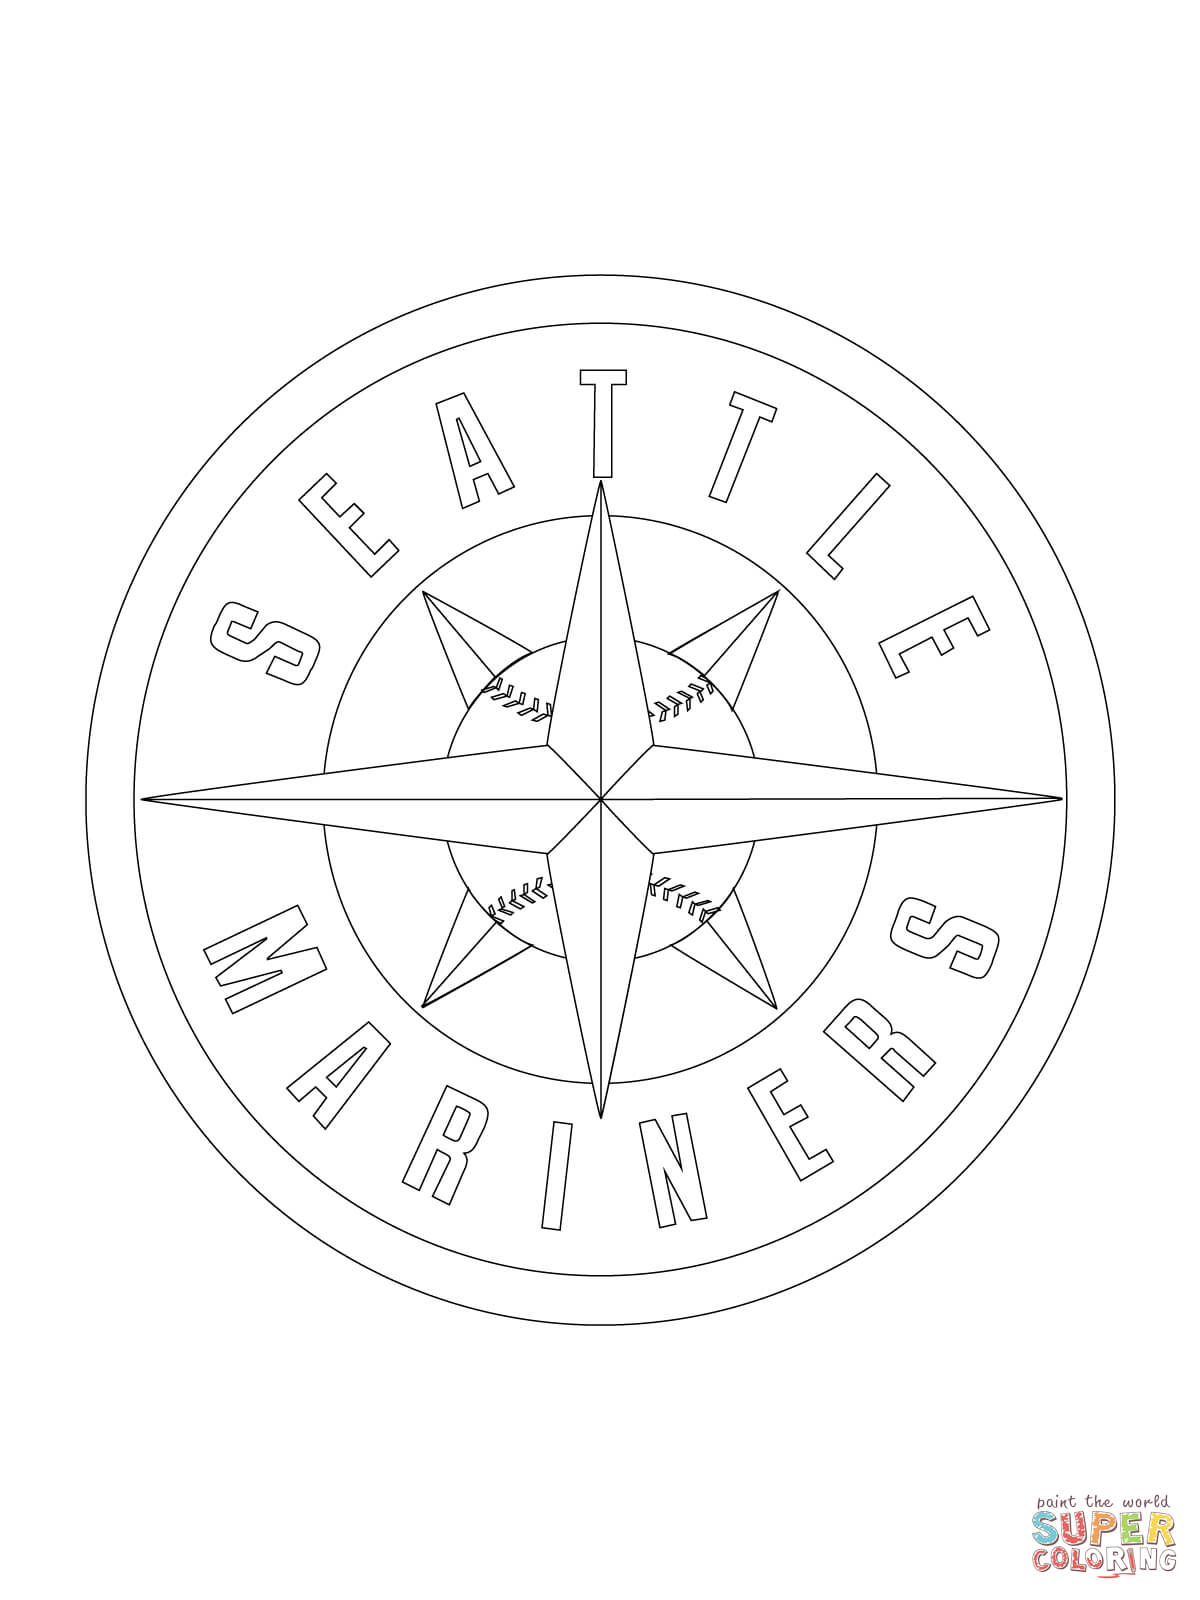 Seattle Mariners Logo Coloring Page